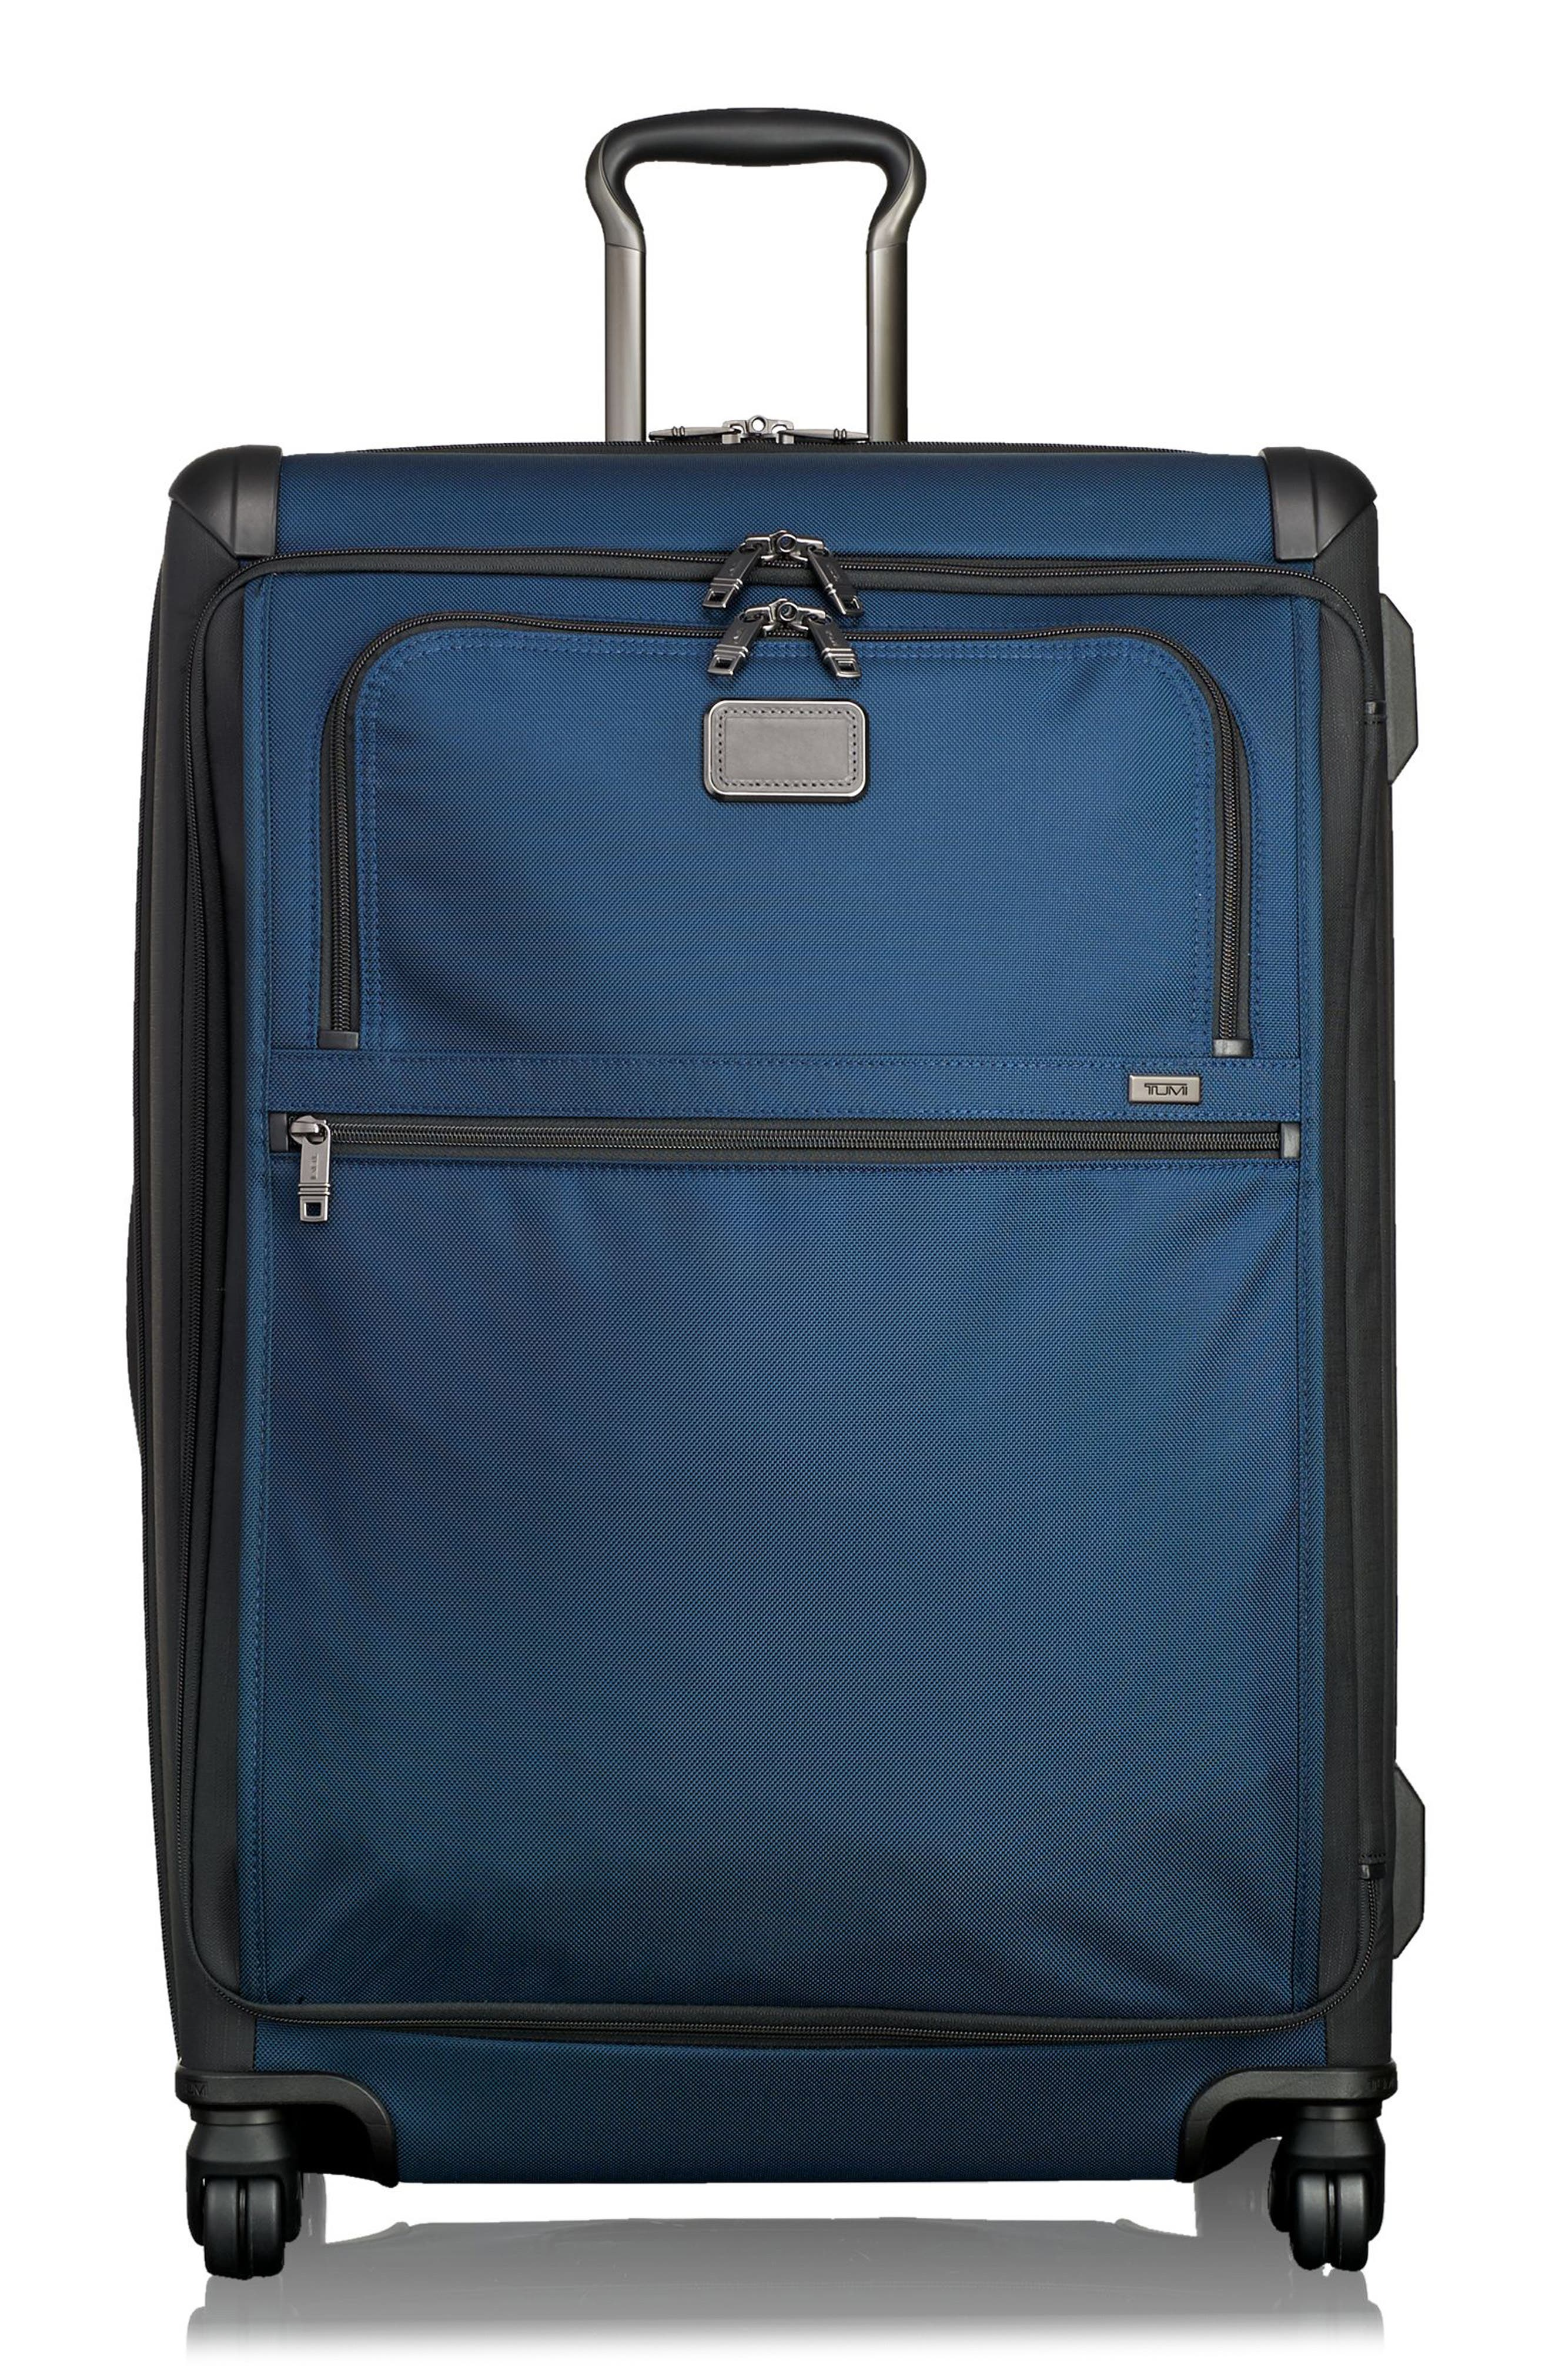 Alternate Image 1 Selected - Tumi Alpha 2 Medium Trip 29-Inch Four-Wheel Packing Case